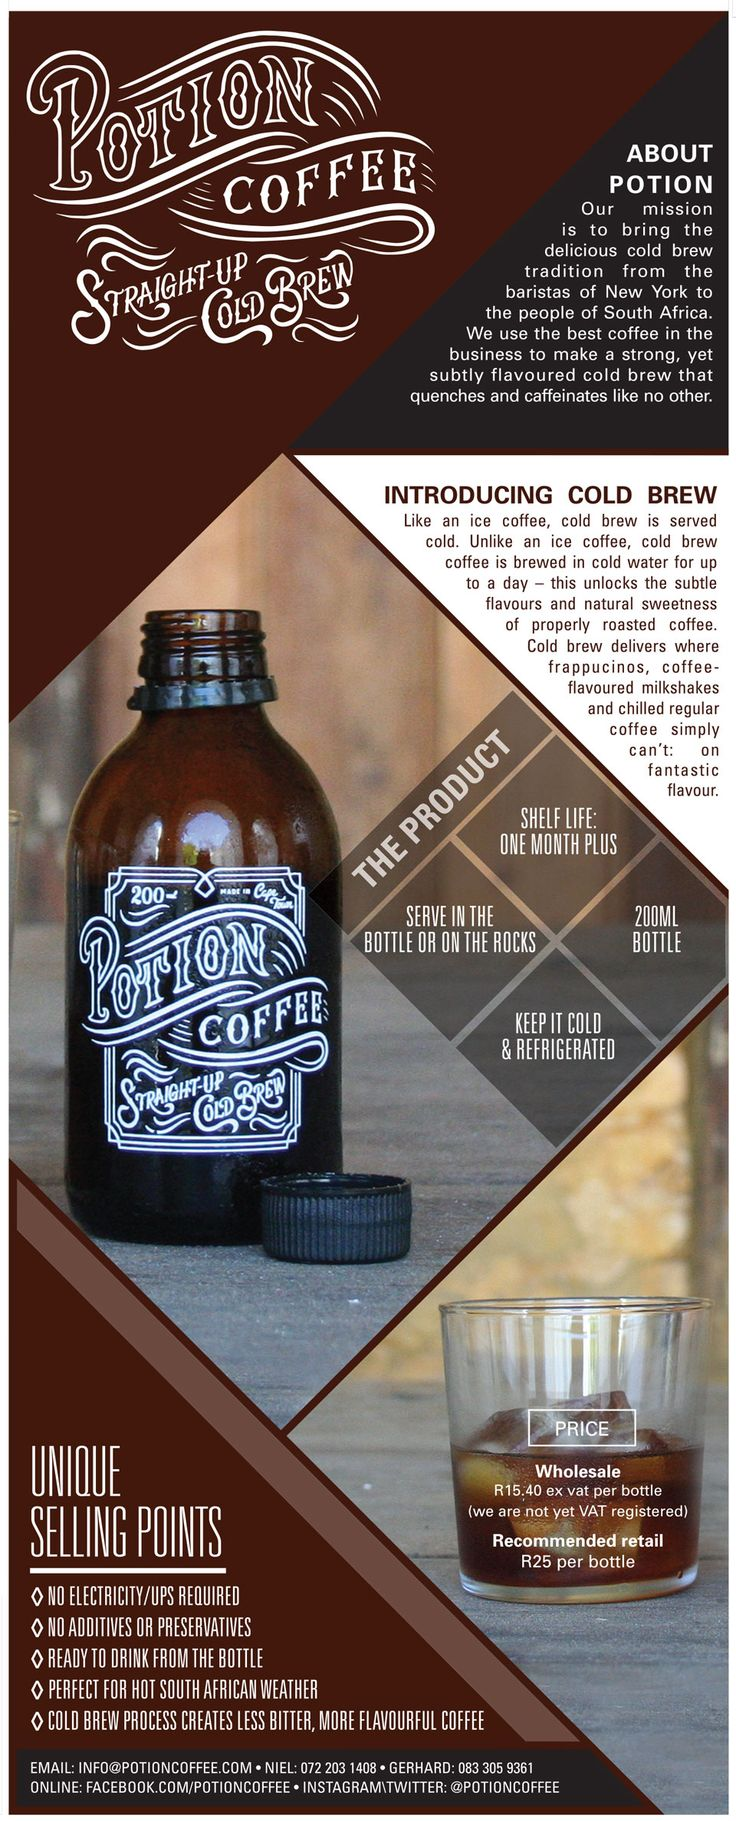 Potion Coffee Cold Brew Product Sheet Layout Design by Maya Liepaz